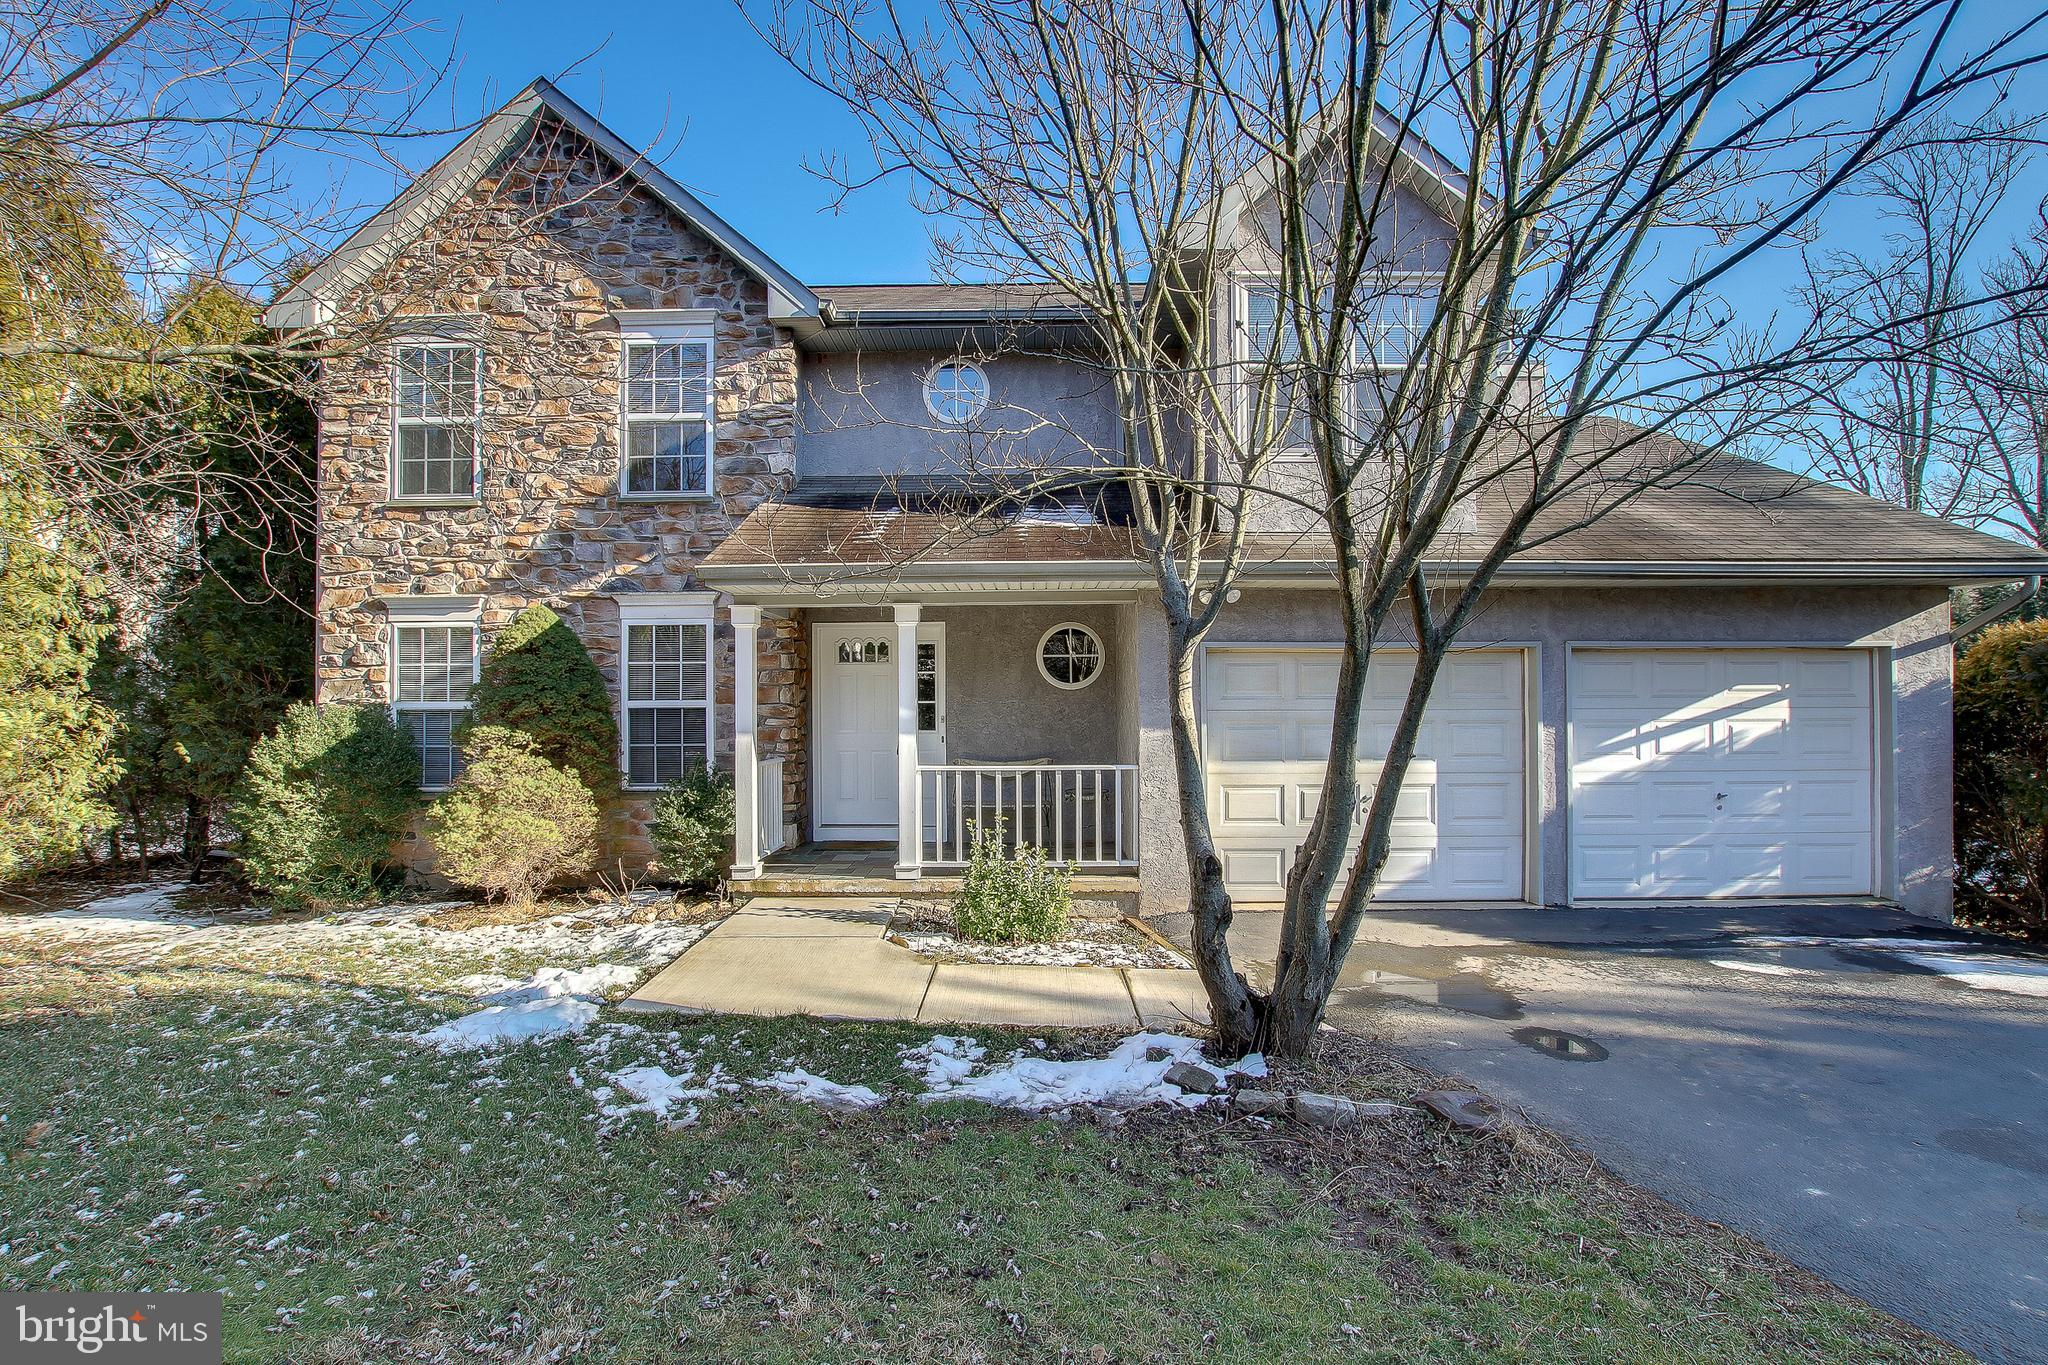 1335 SHADOW CREEK LANE, WARRINGTON, PA 18976